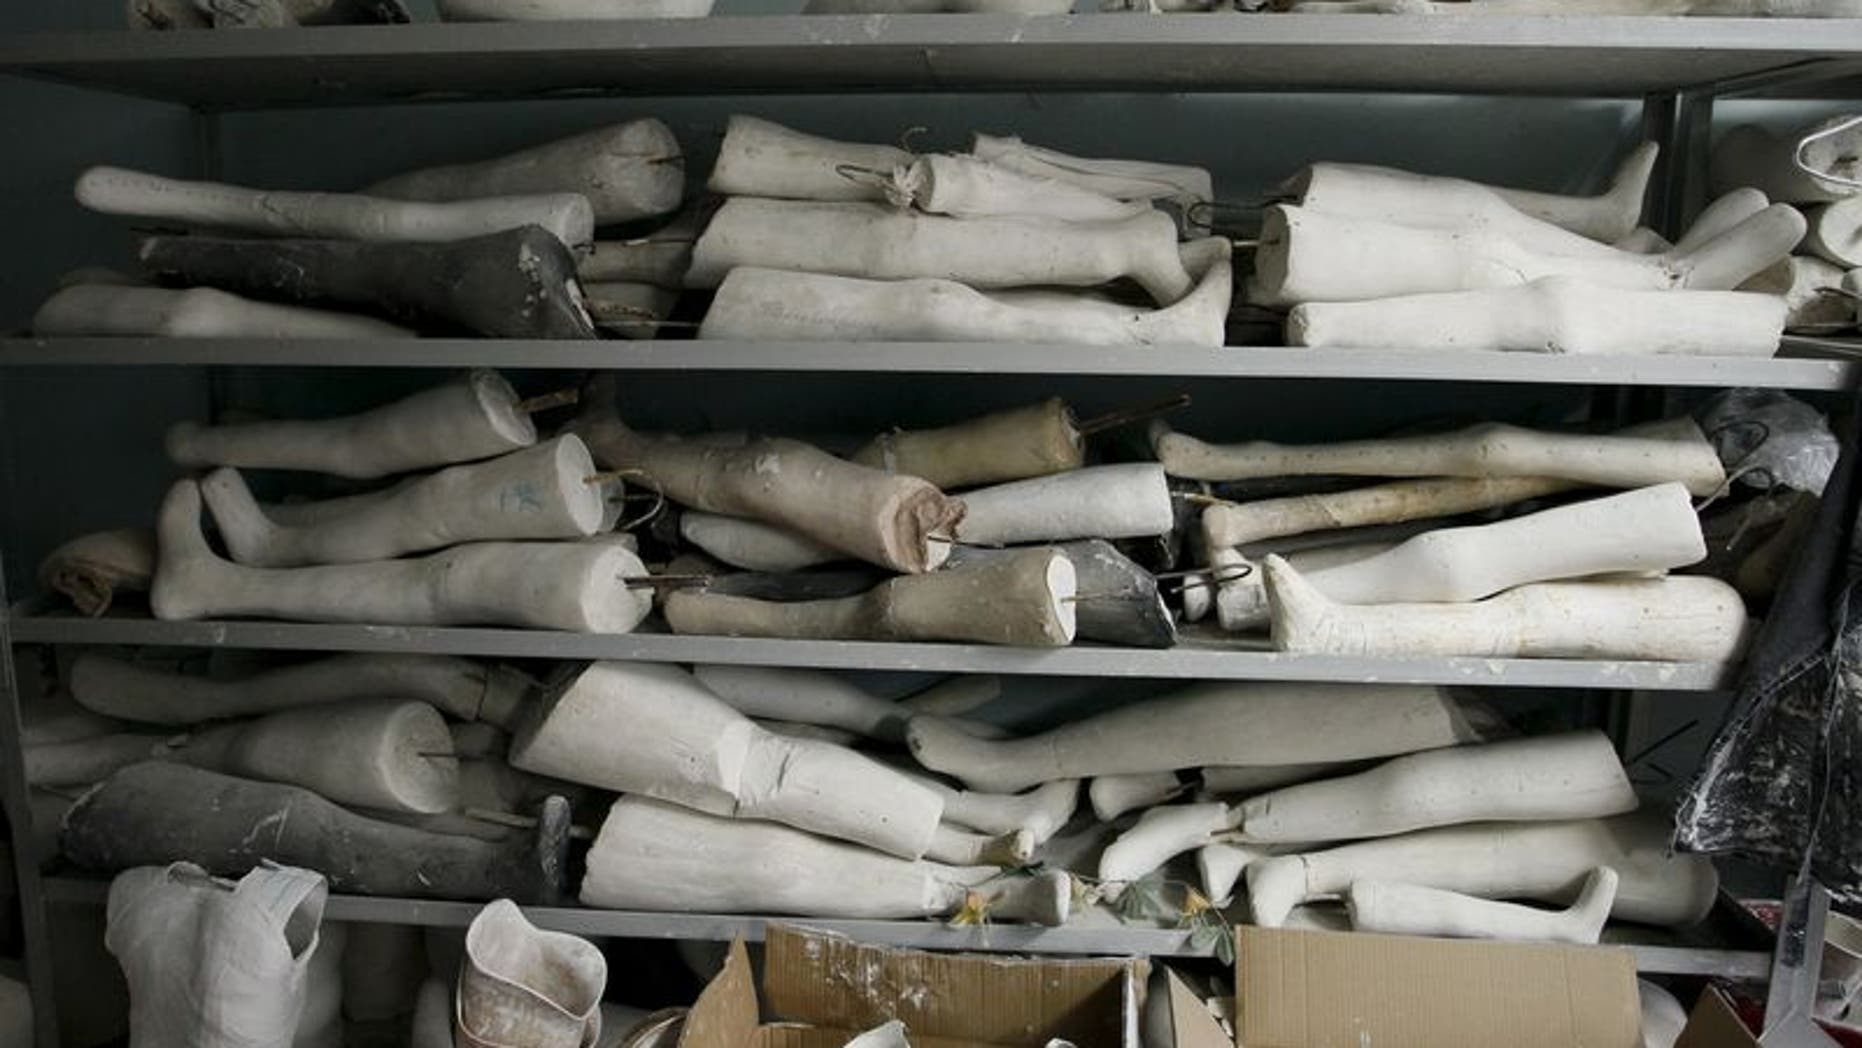 Plaster of Paris moulds of legs are stored at the Orthopedic Center in Donetsk, Ukraine, December 2, 2015.  REUTERS/Alexander Ermochenko